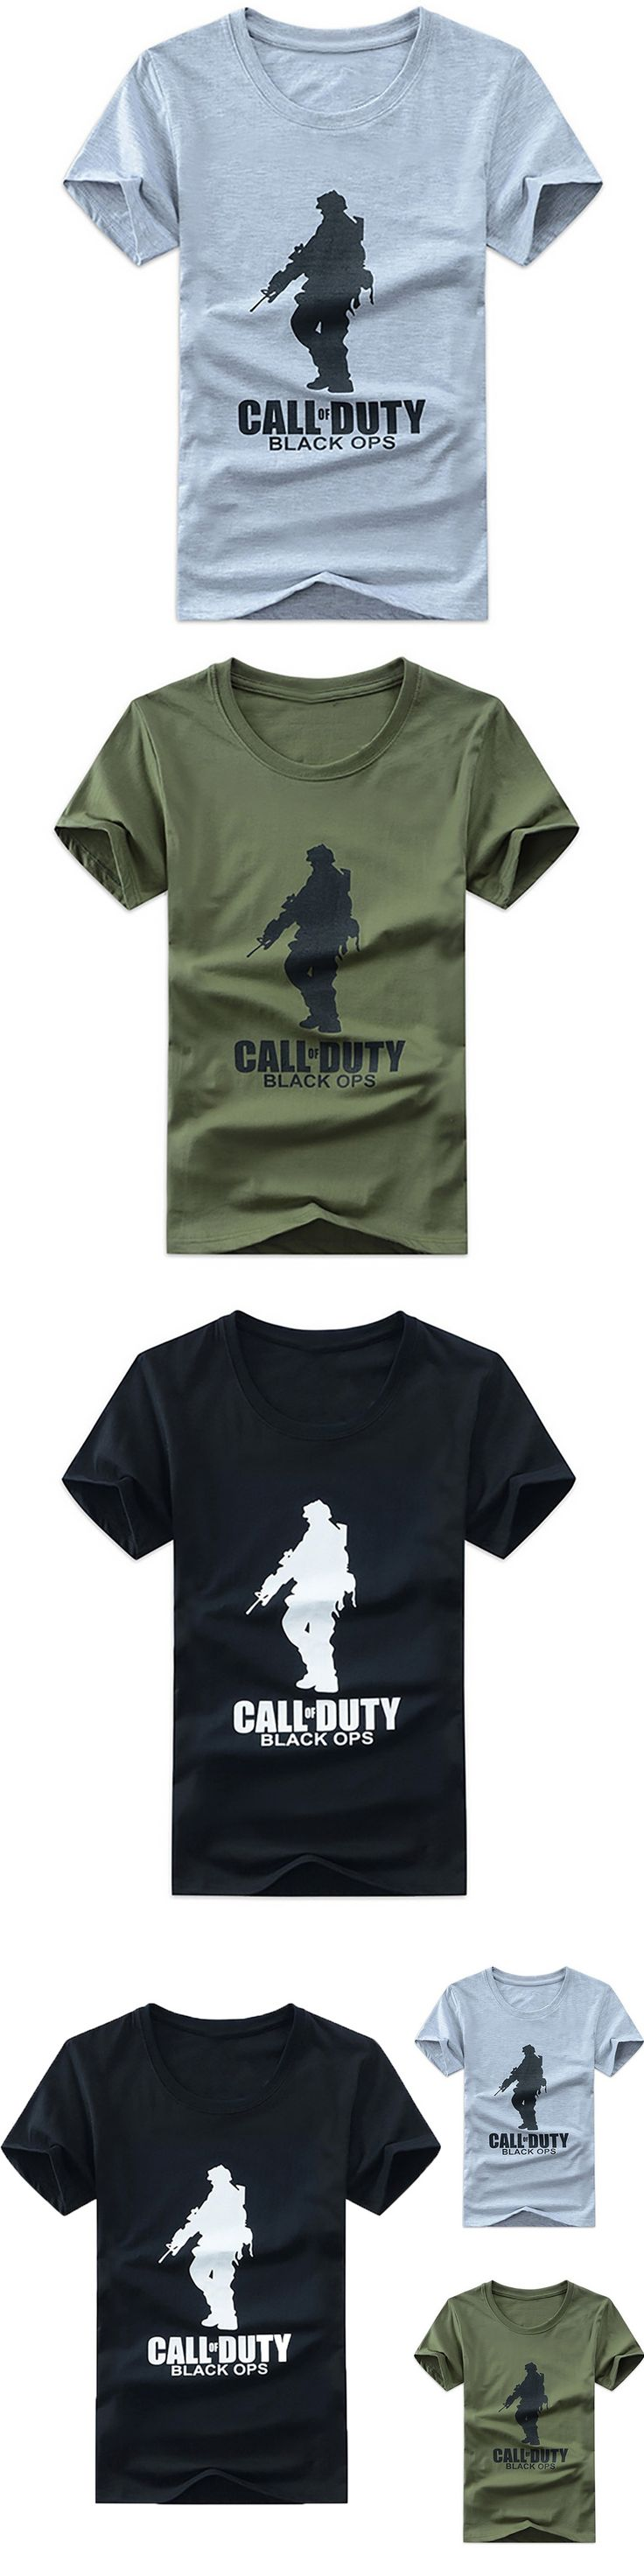 Men's T-Shirt Three Colors Summer Style Adults TShirt Printed CALL DUTY BLACK OPS and Man Size M-2XL